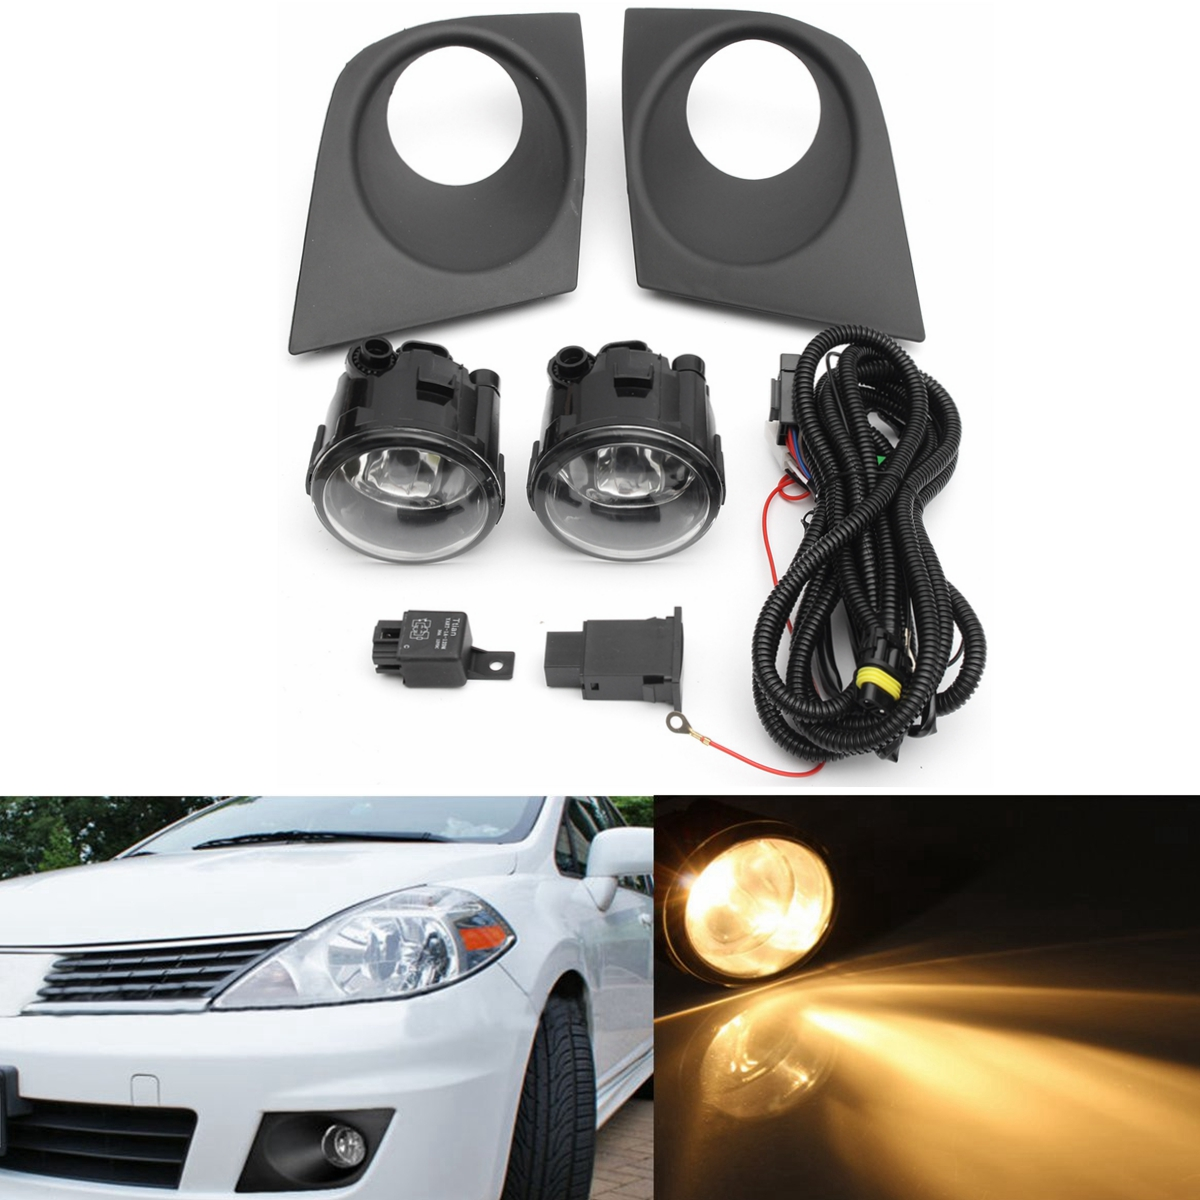 hight resolution of 1 pair car front bumper grille h11 fog light bulb with switch wire for nissan versa 2007 2008 2009 2010 2011 fog lamps